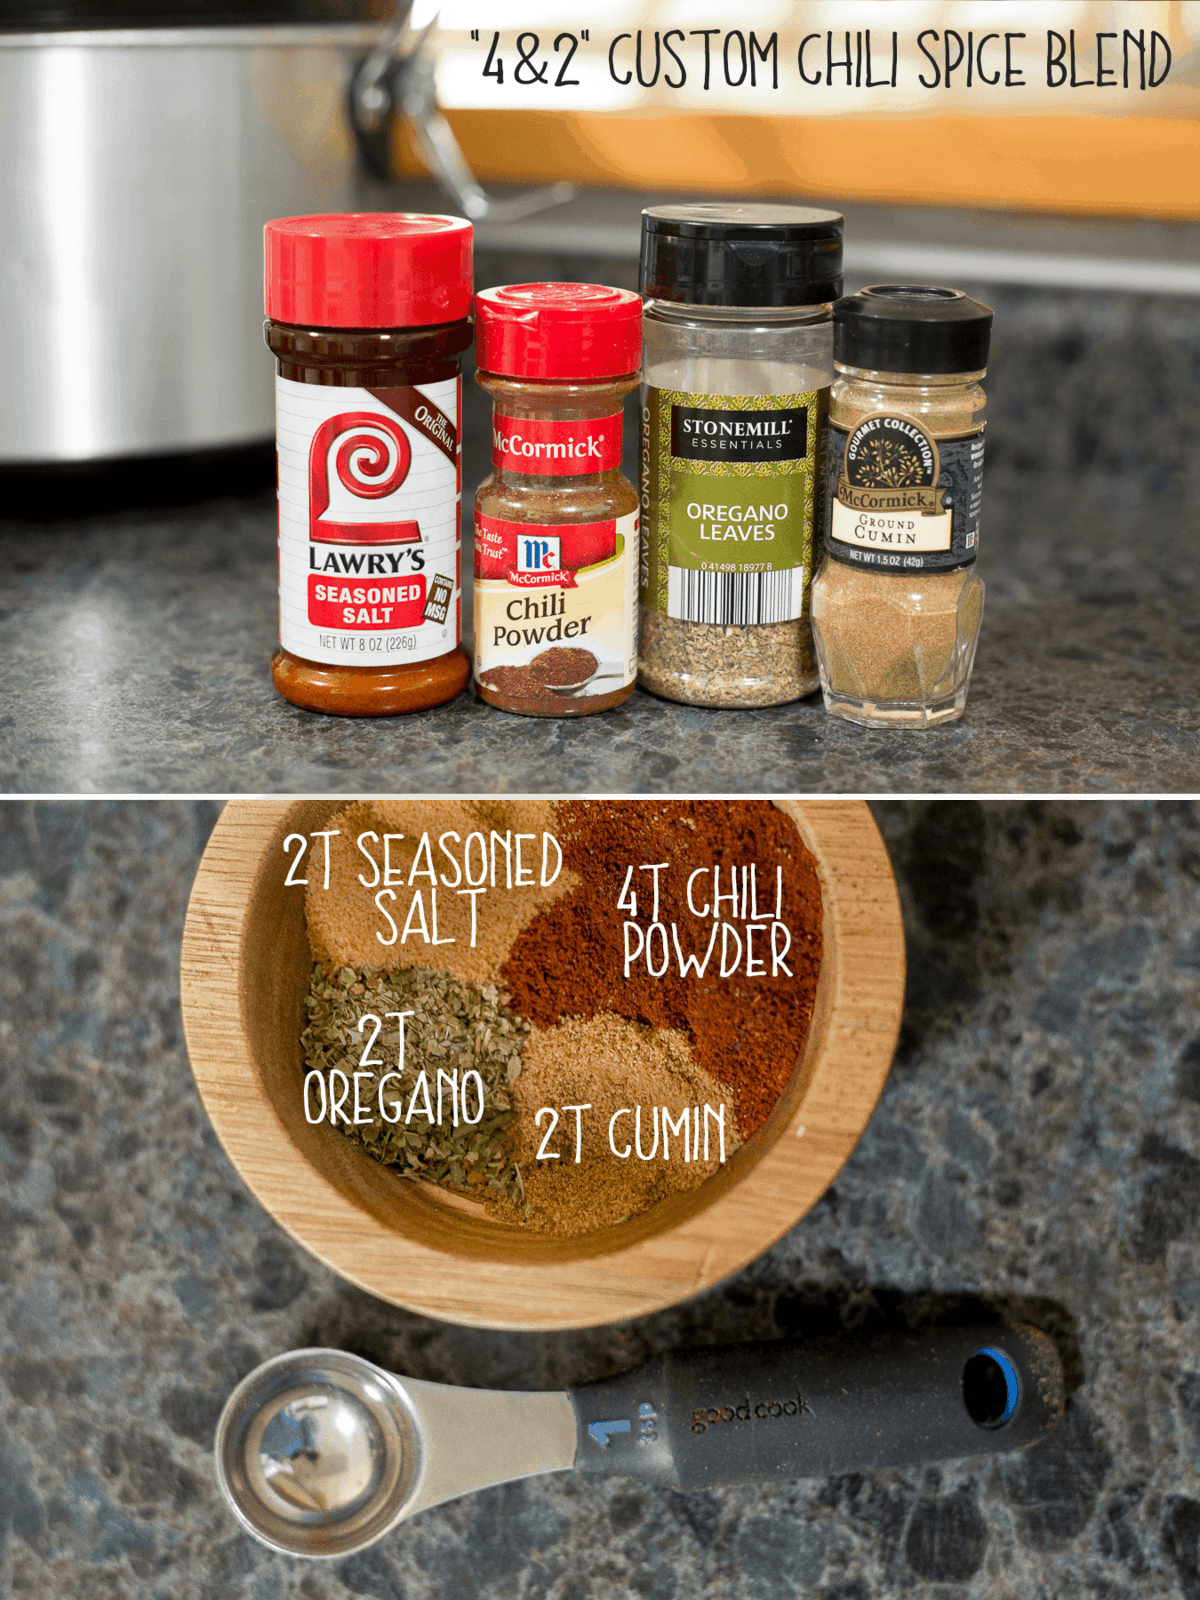 Most delicious and EASIEST chili blend recipe EVER. Most of the ingredients you've already likely got in your cabinet! The seasoned salt takes care of a whole collection of common ingredients in most chili blends (salt, paprika, sugar, etc). The measurements are so simple, you don't even need to print the recipe. *Love this simple recipe!